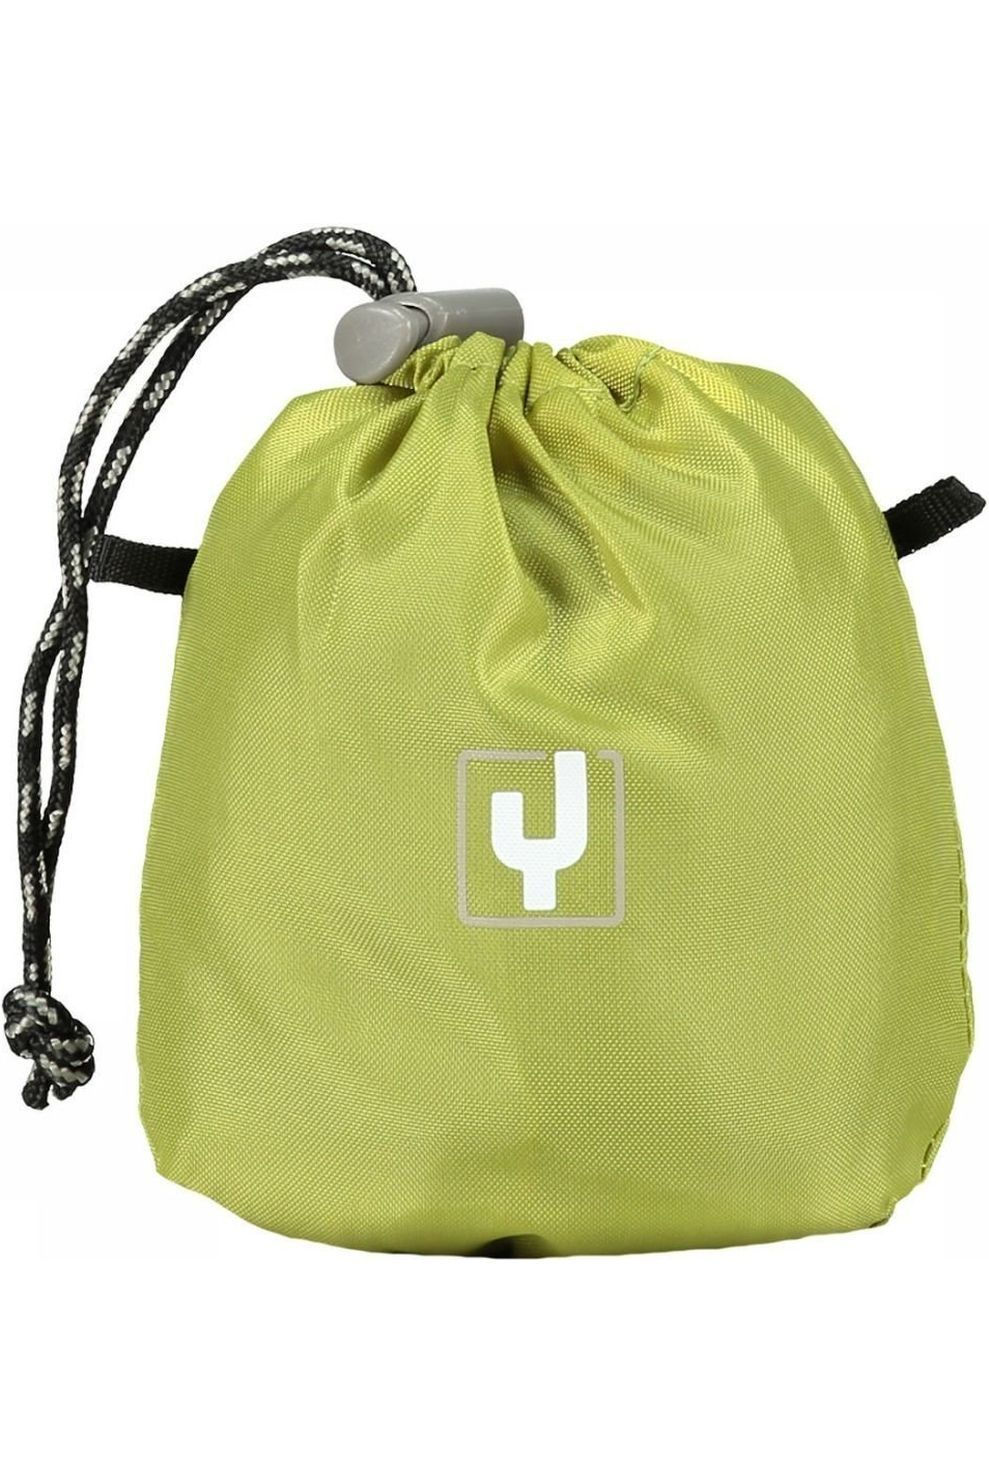 Ayacucho Accessoire Storage Bag Sleeping Bag - / Transparant